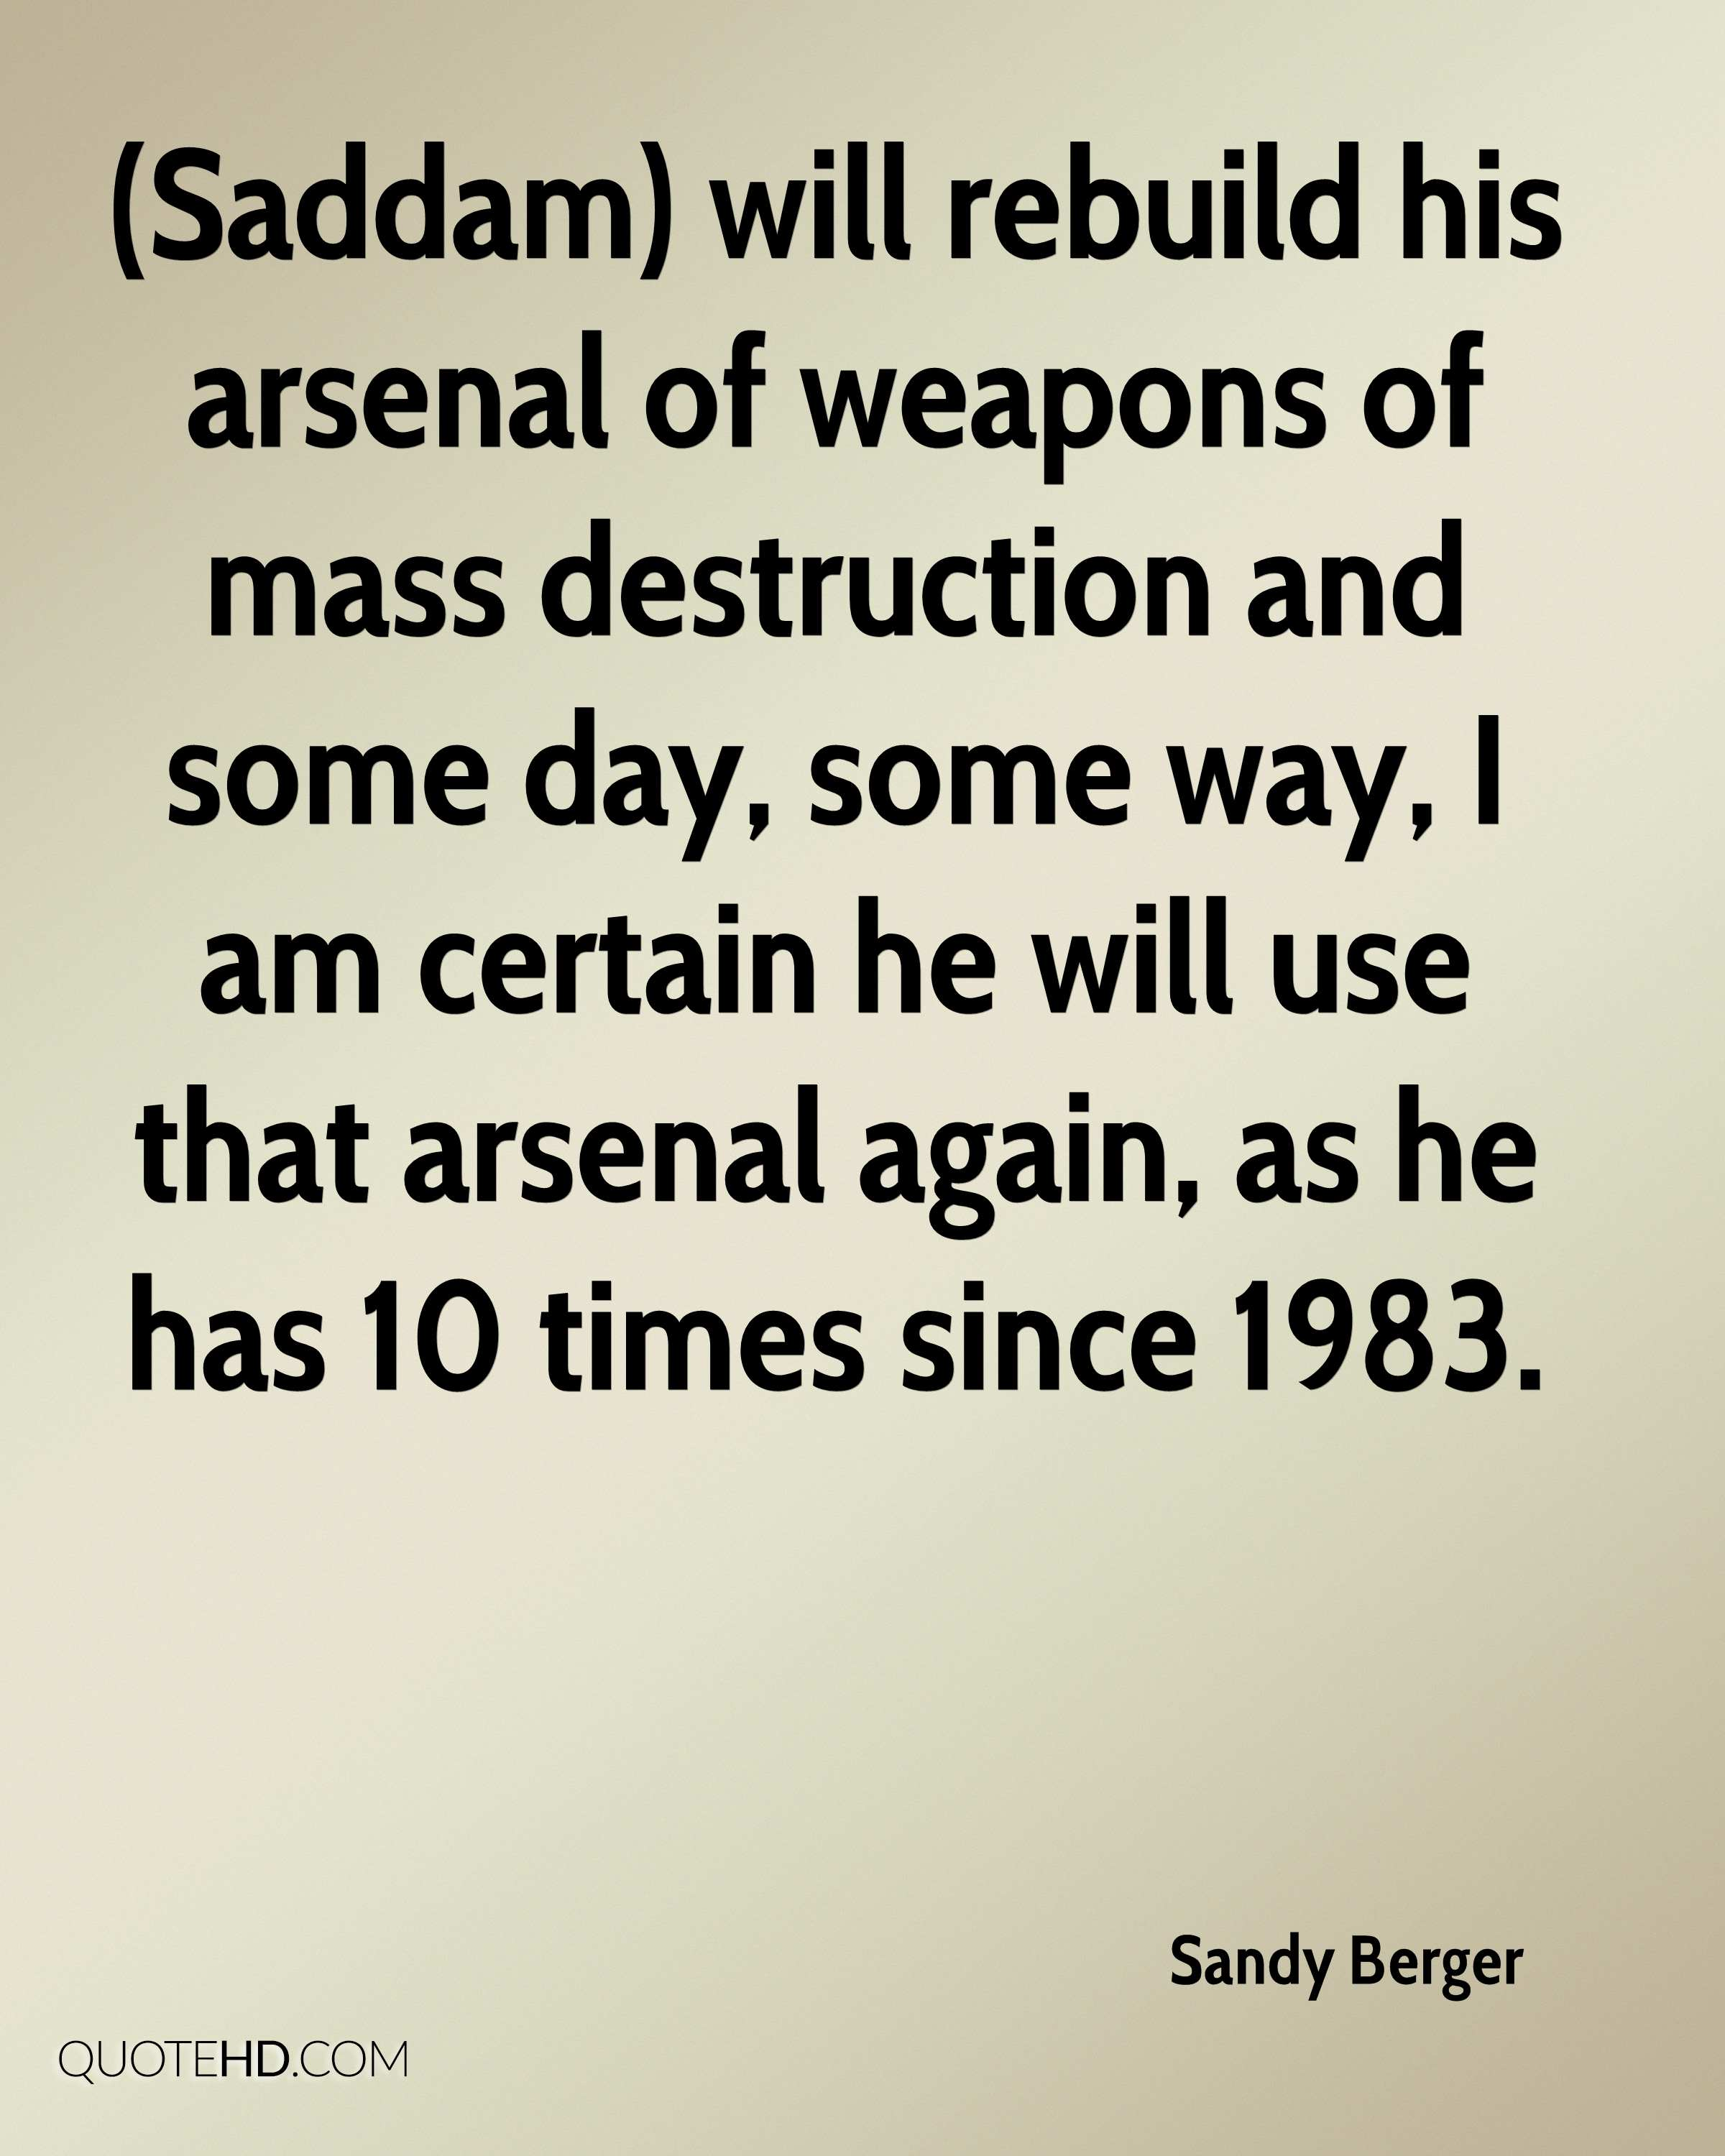 (Saddam) will rebuild his arsenal of weapons of mass destruction and some day, some way, I am certain he will use that arsenal again, as he has 10 times since 1983.